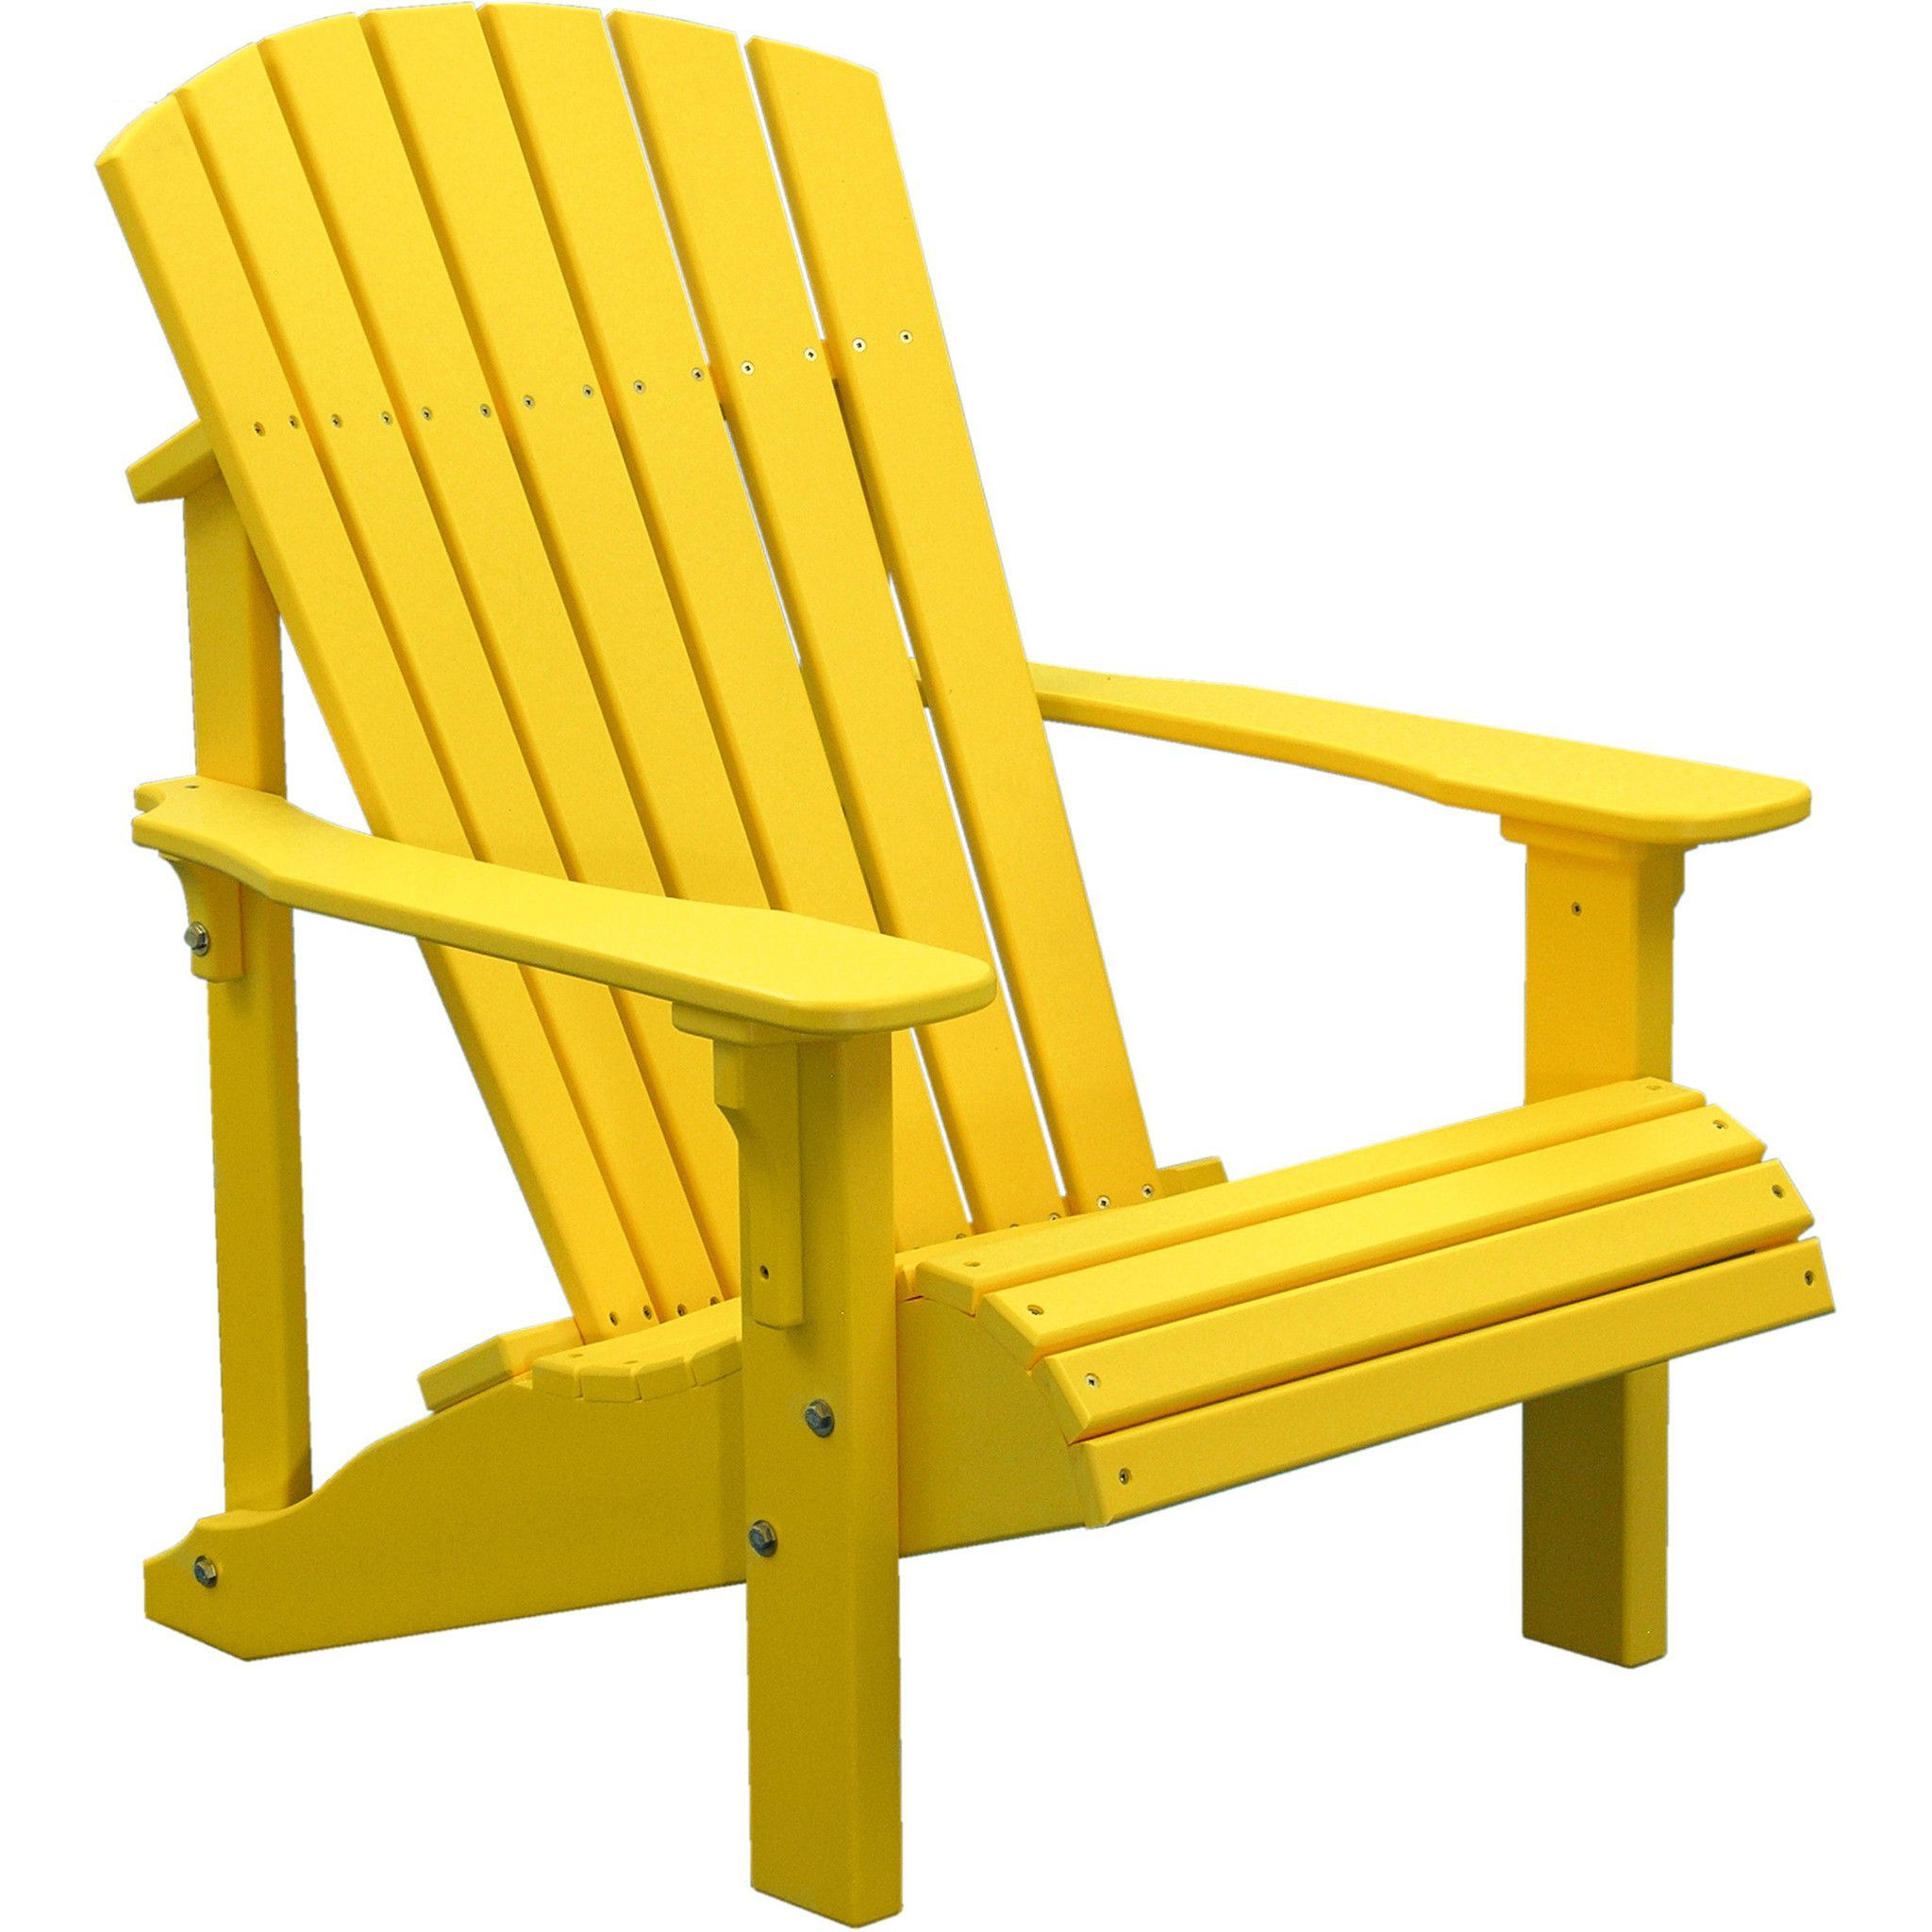 Yellow Adirondack Chairs Plastic Classic Leather Chair Luxcraft Deluxe Recycled